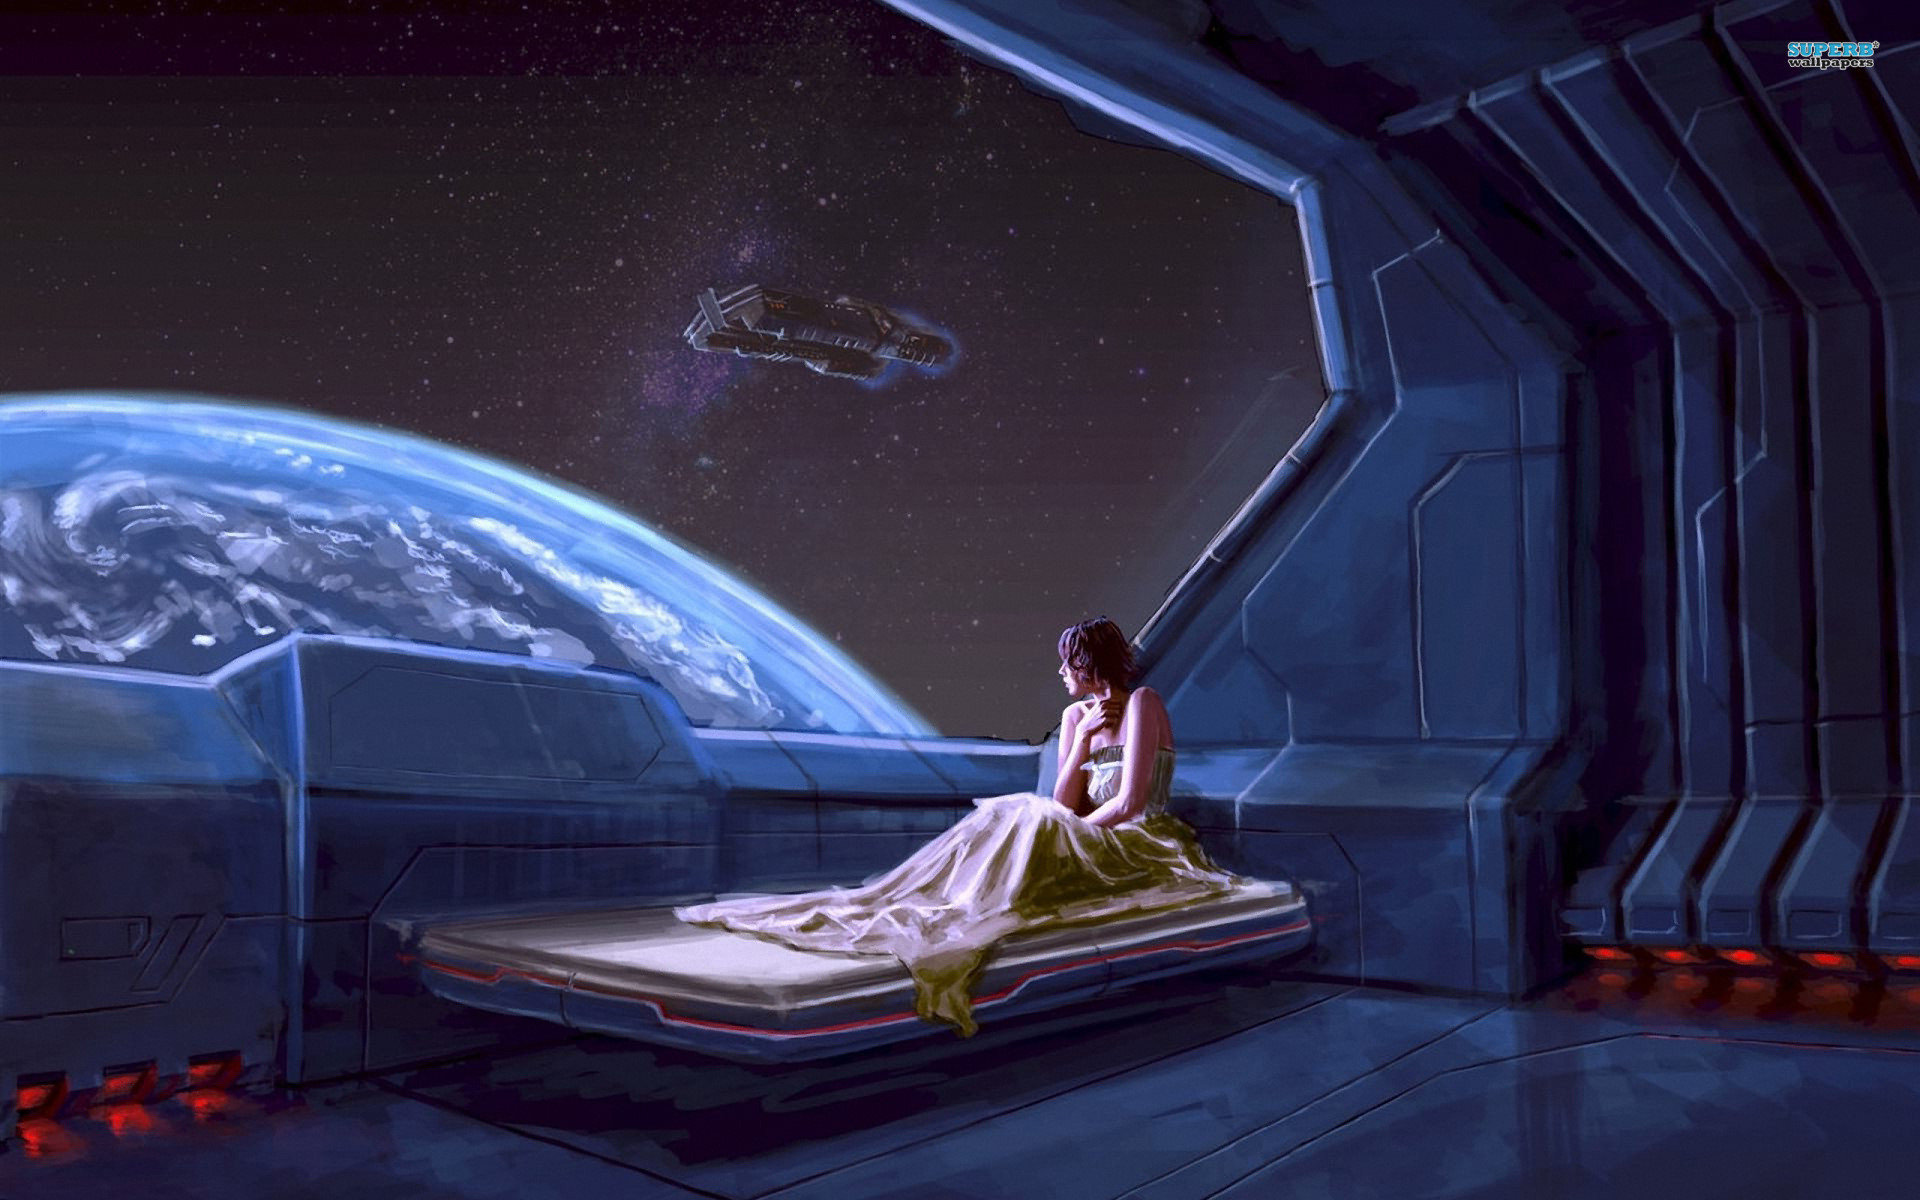 Girl in a spaceship wallpaper – Fantasy wallpapers –